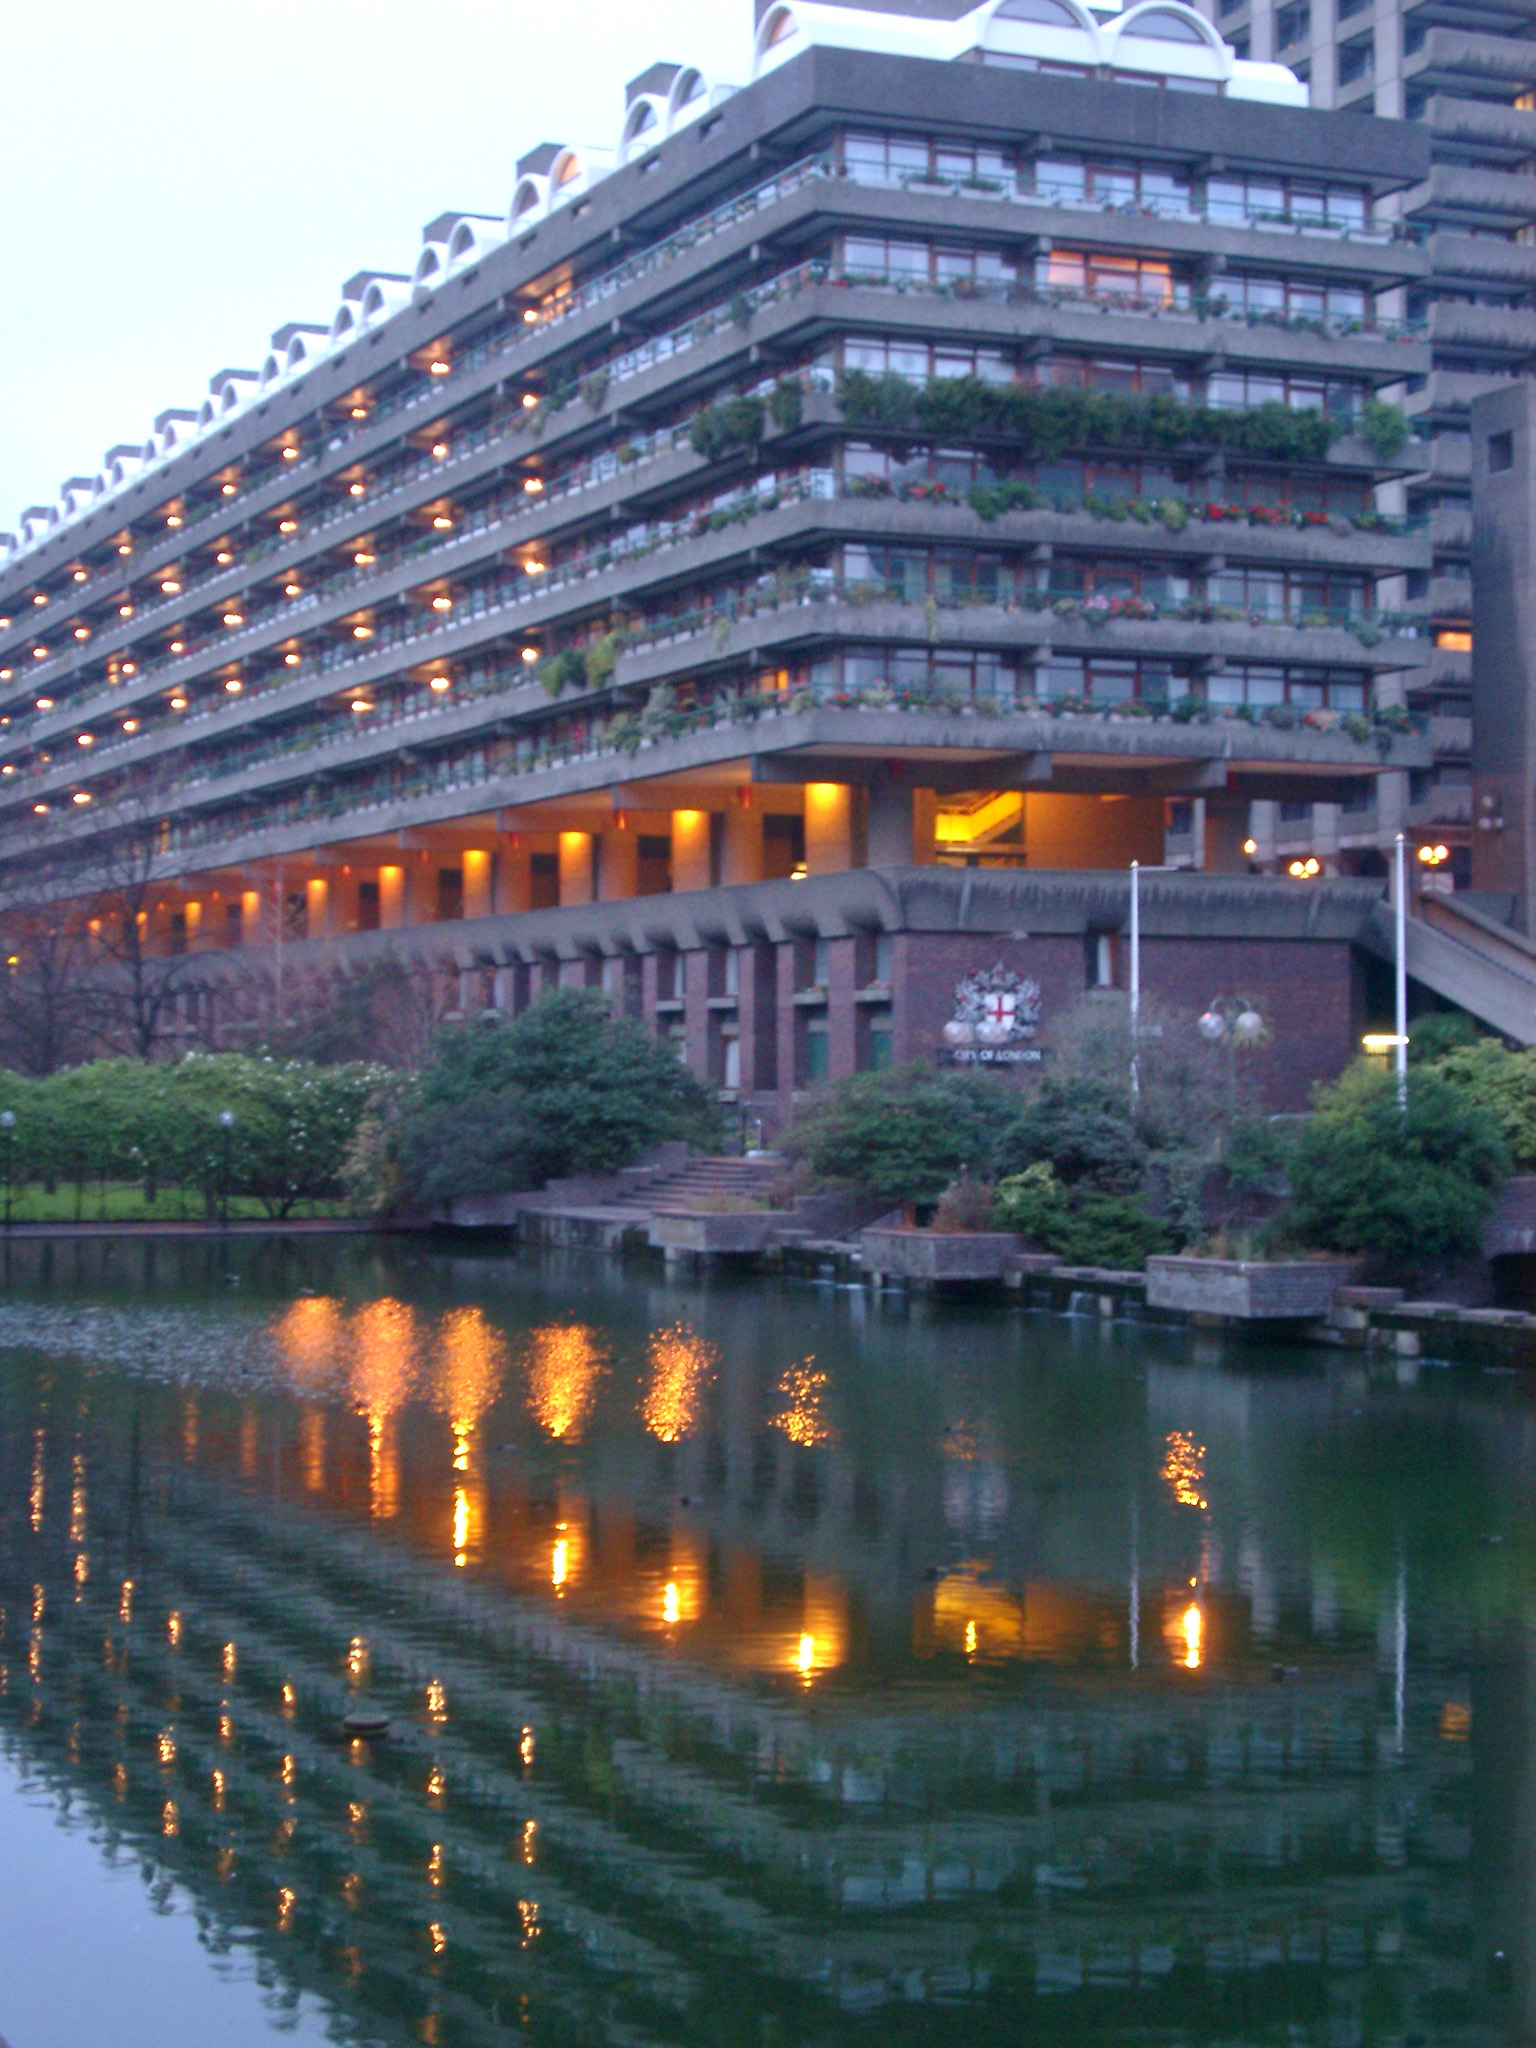 Barbican apartment block at dusk with the lights reflected in a pool below, London, England